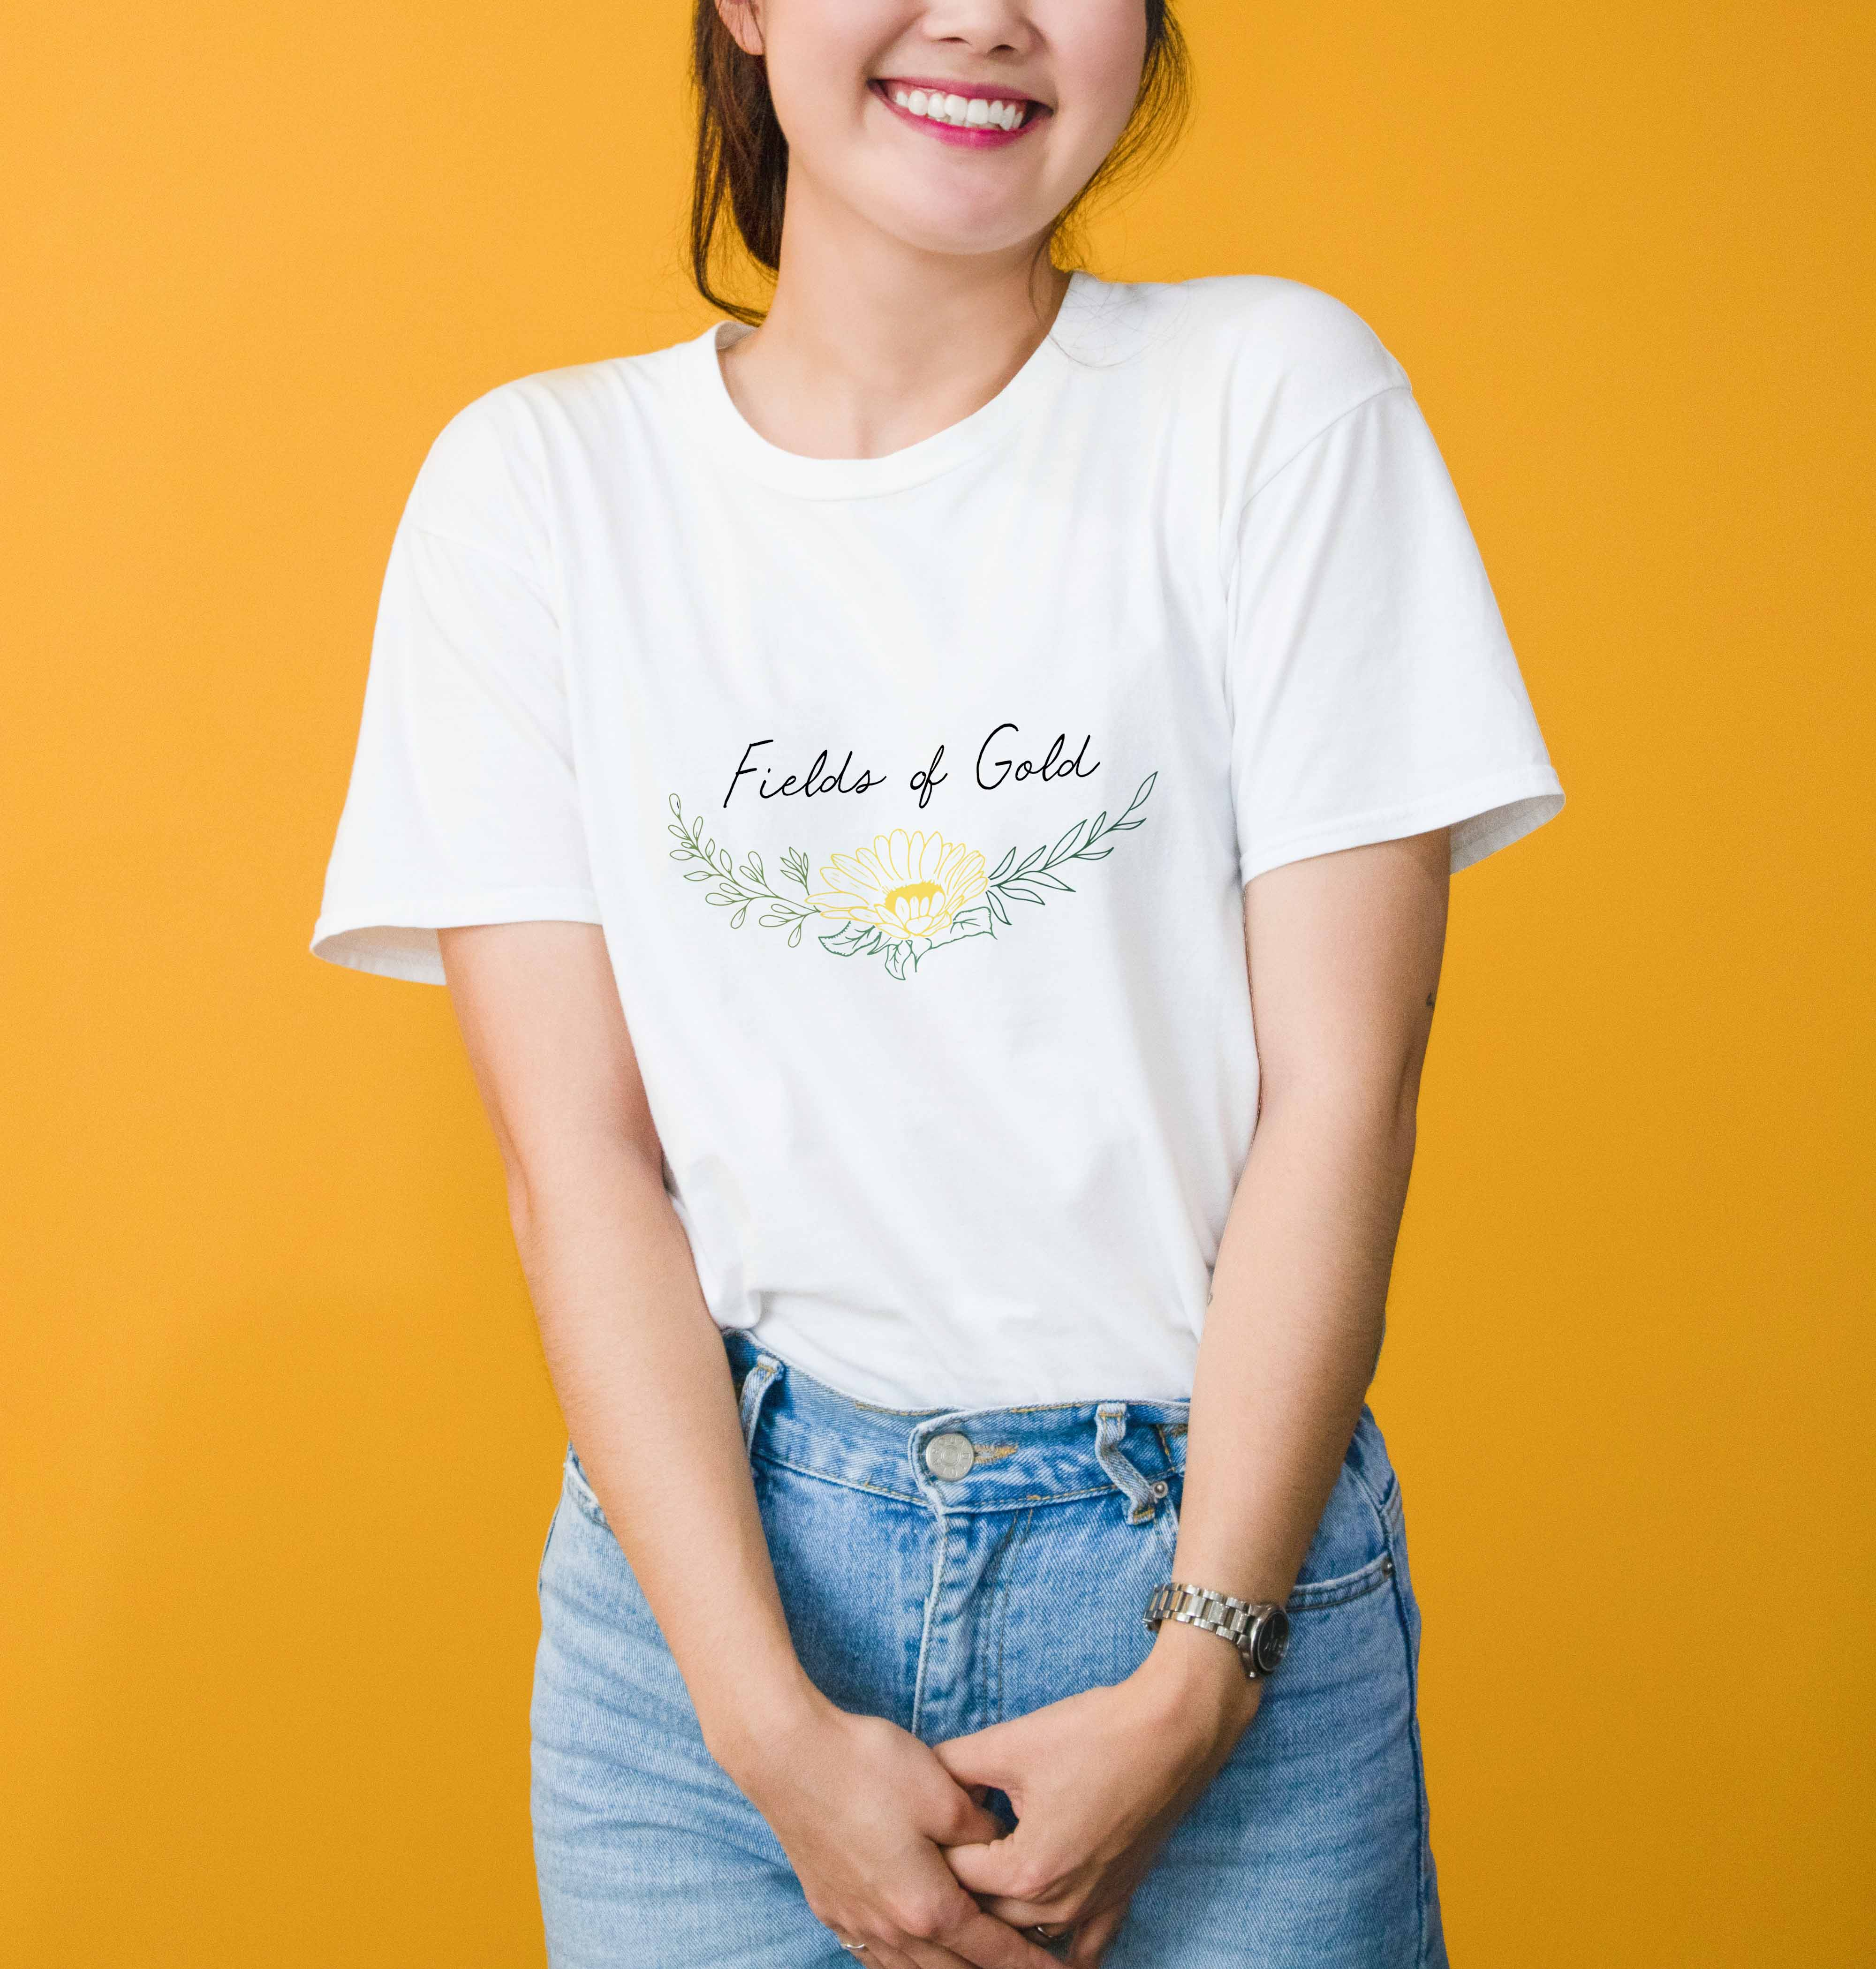 Photo of person wearing a white t-shirt with the Fields of Gold logo on it